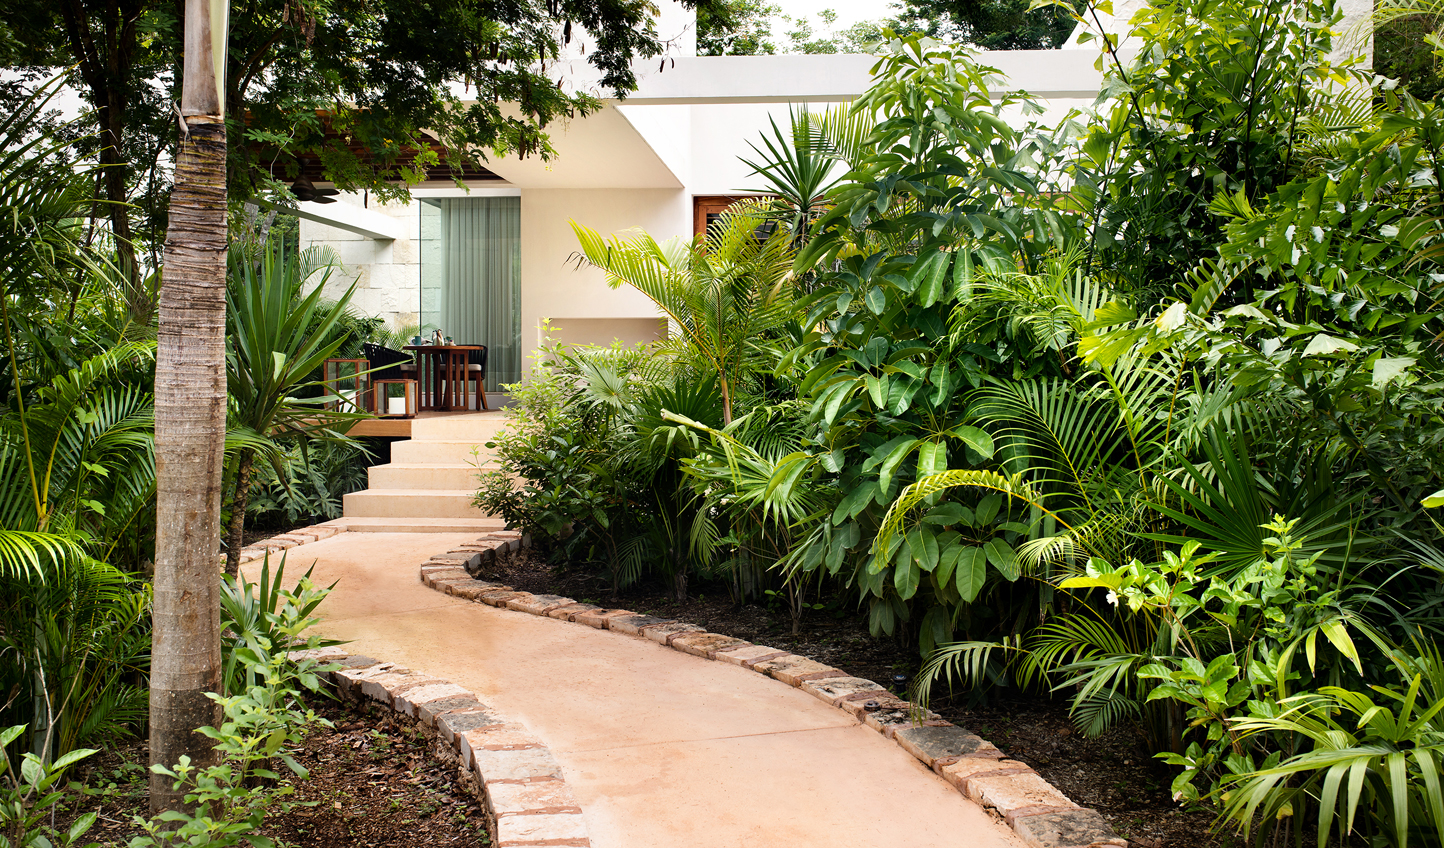 Your home in the gardens of the Yucatan